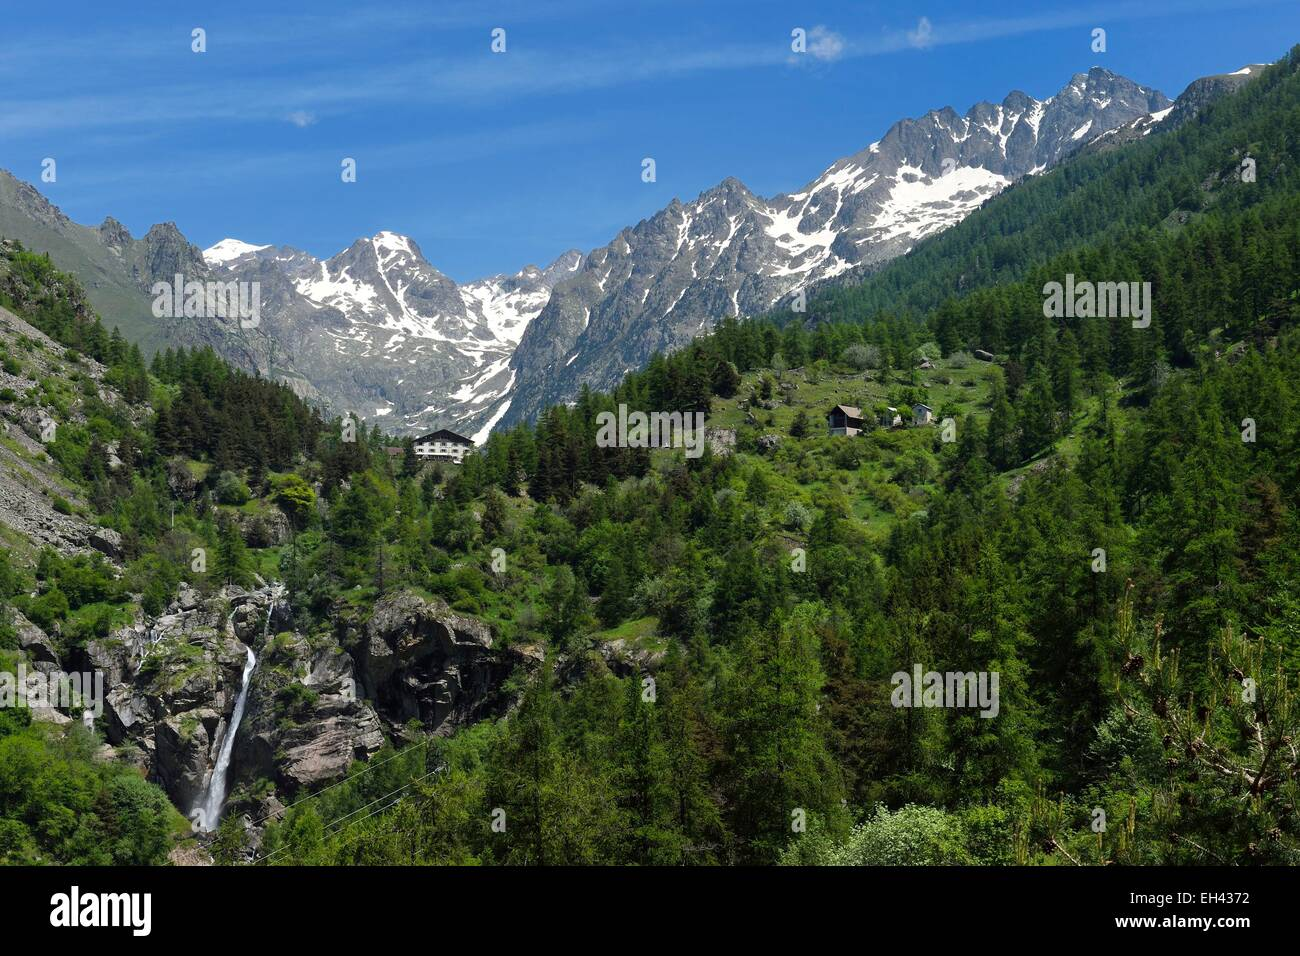 France, Alpes Maritimes, Parc National du Mercantour (Mercantour national park), Haute Vesubie, Gordolasque valley,the Stock Photo